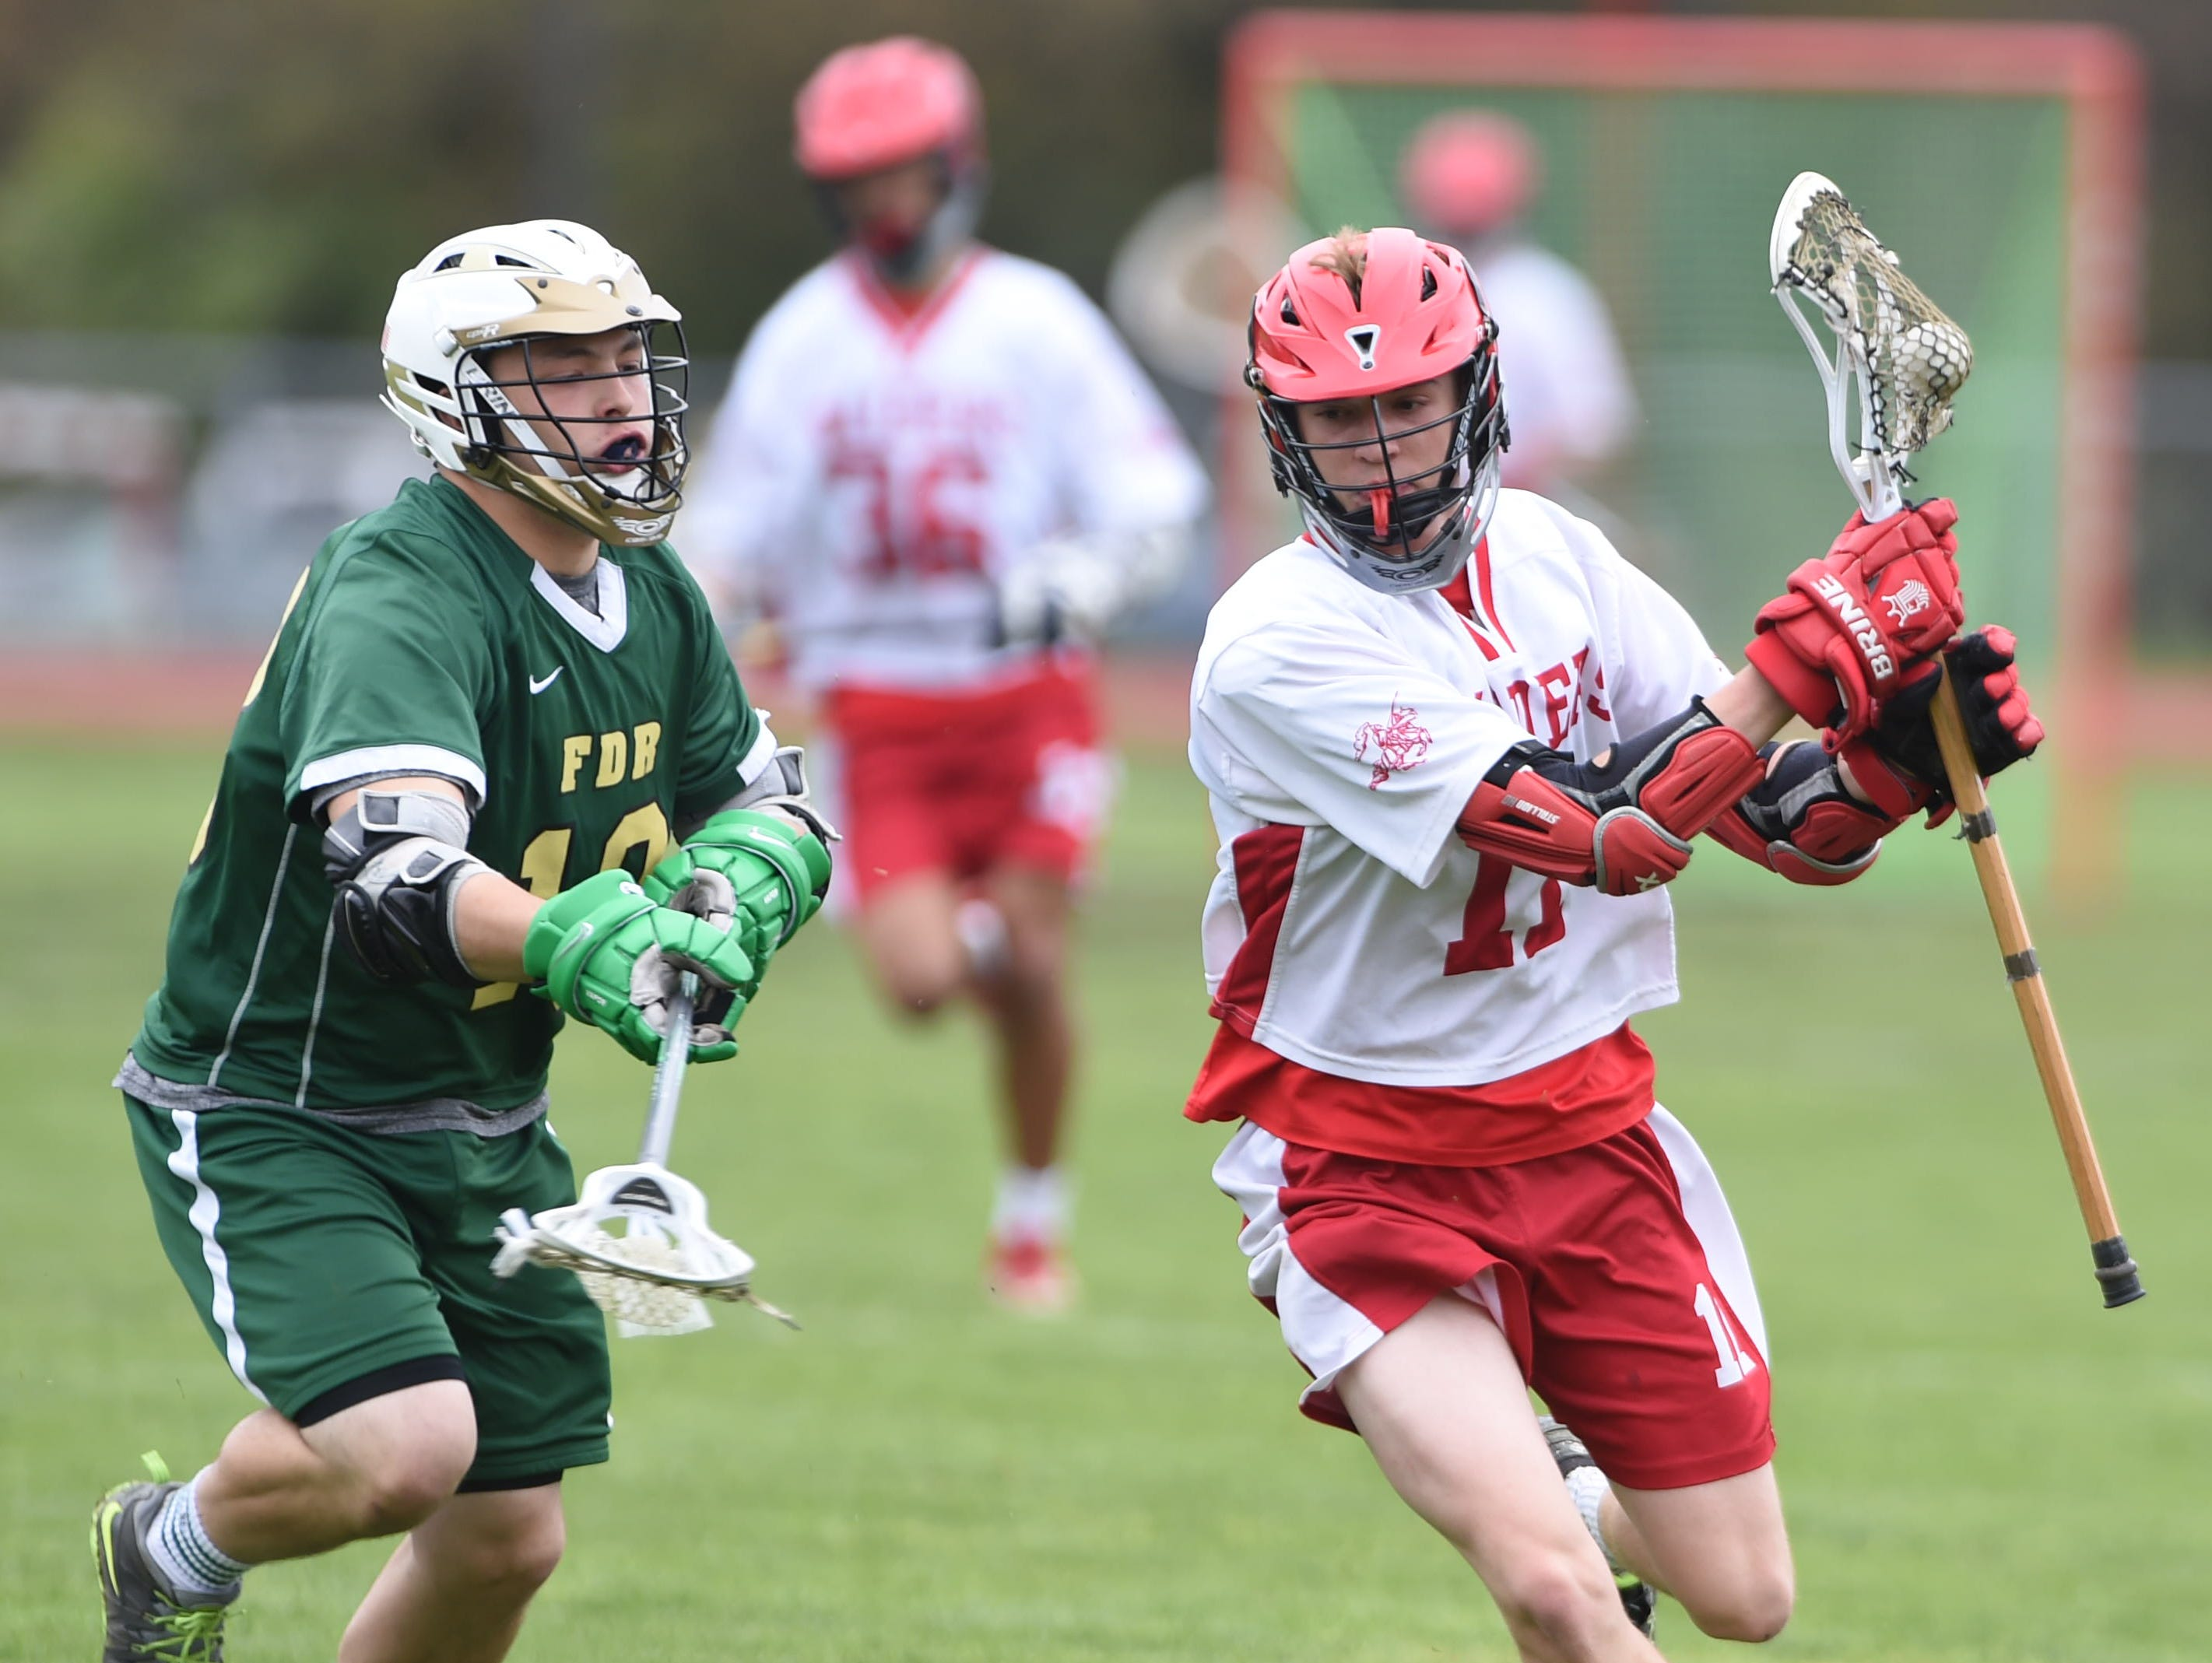 Red Hook's Mikey Gildersleeve is covered by FDR's Geno Coppola during Tuesday's game at Red Hook.